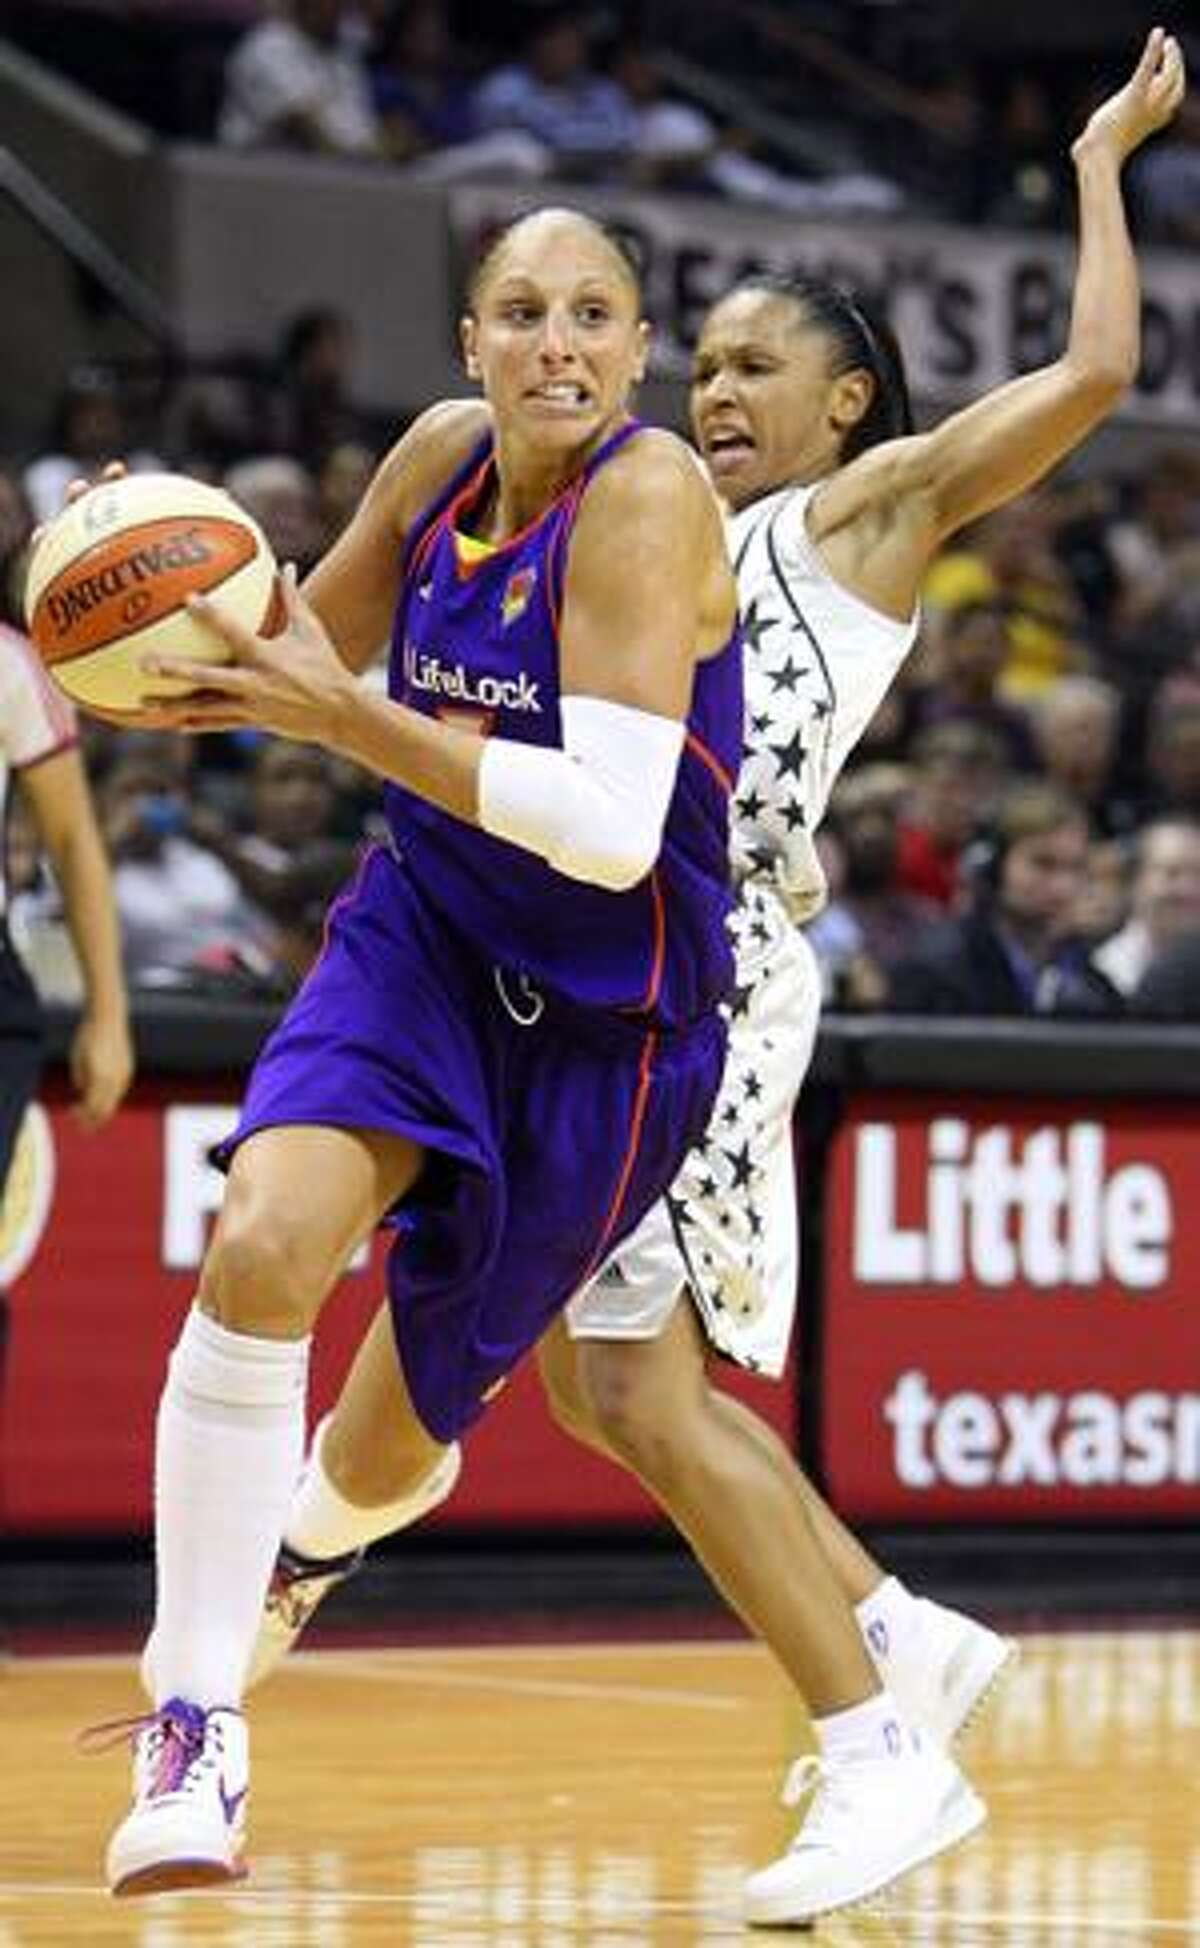 AP Phoenix Mercury's Diana Taurasi drives around San Antonio Silver Stars' Edwige Lawson-Wade during first half action in a WNBA game in San Antonio, Saturday at the AT&T Center.